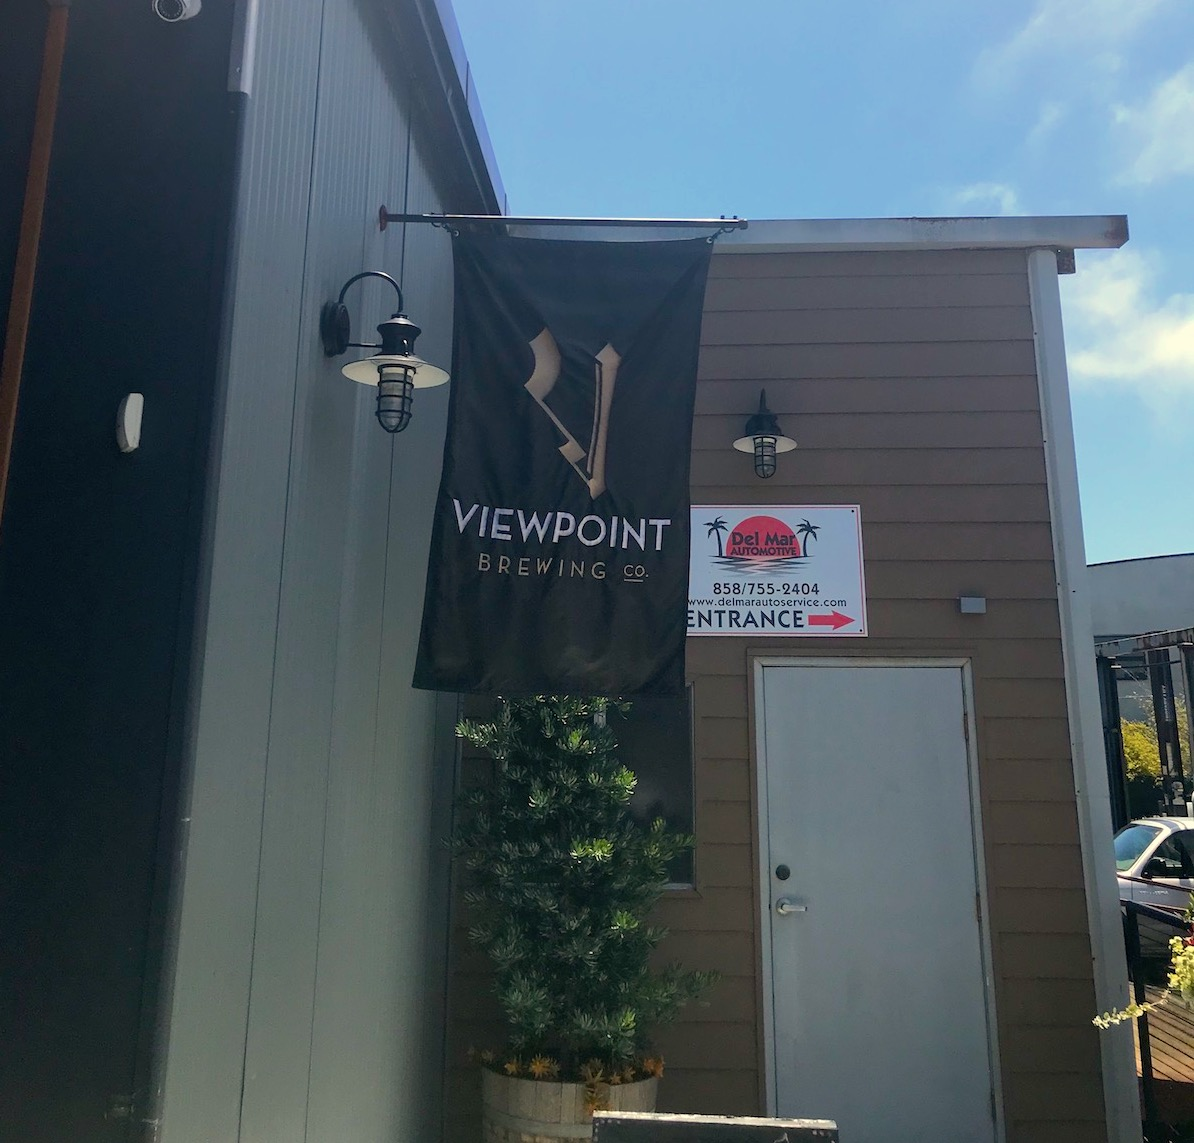 Viewpoint Brewing Co. Setting The Standard As Del Mar's Only Brewery